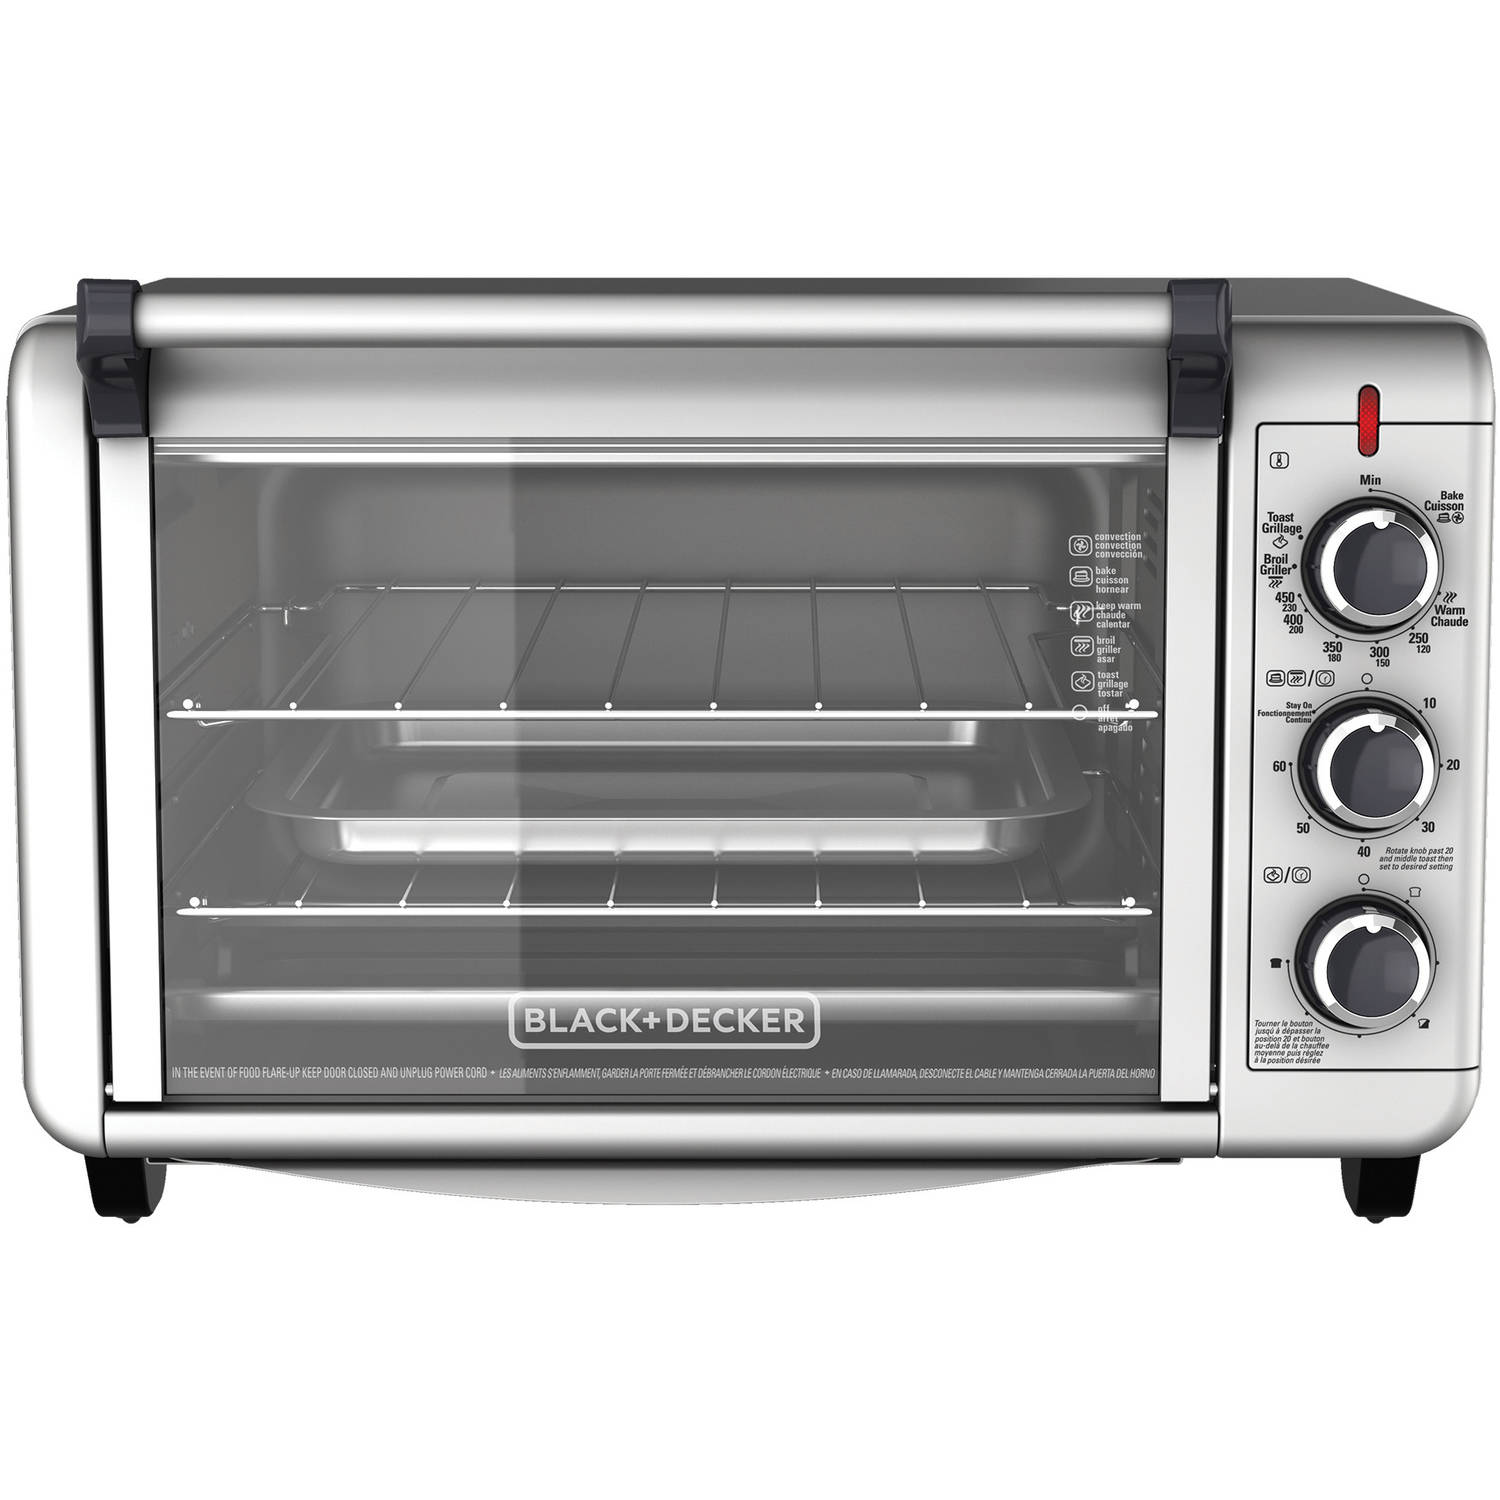 modern appliance heat toa classic ovens stylish kitchen convection turbo cool control and counter element toaster amusing appliances oster adorable range with decker oven black pans cheap for walmart under